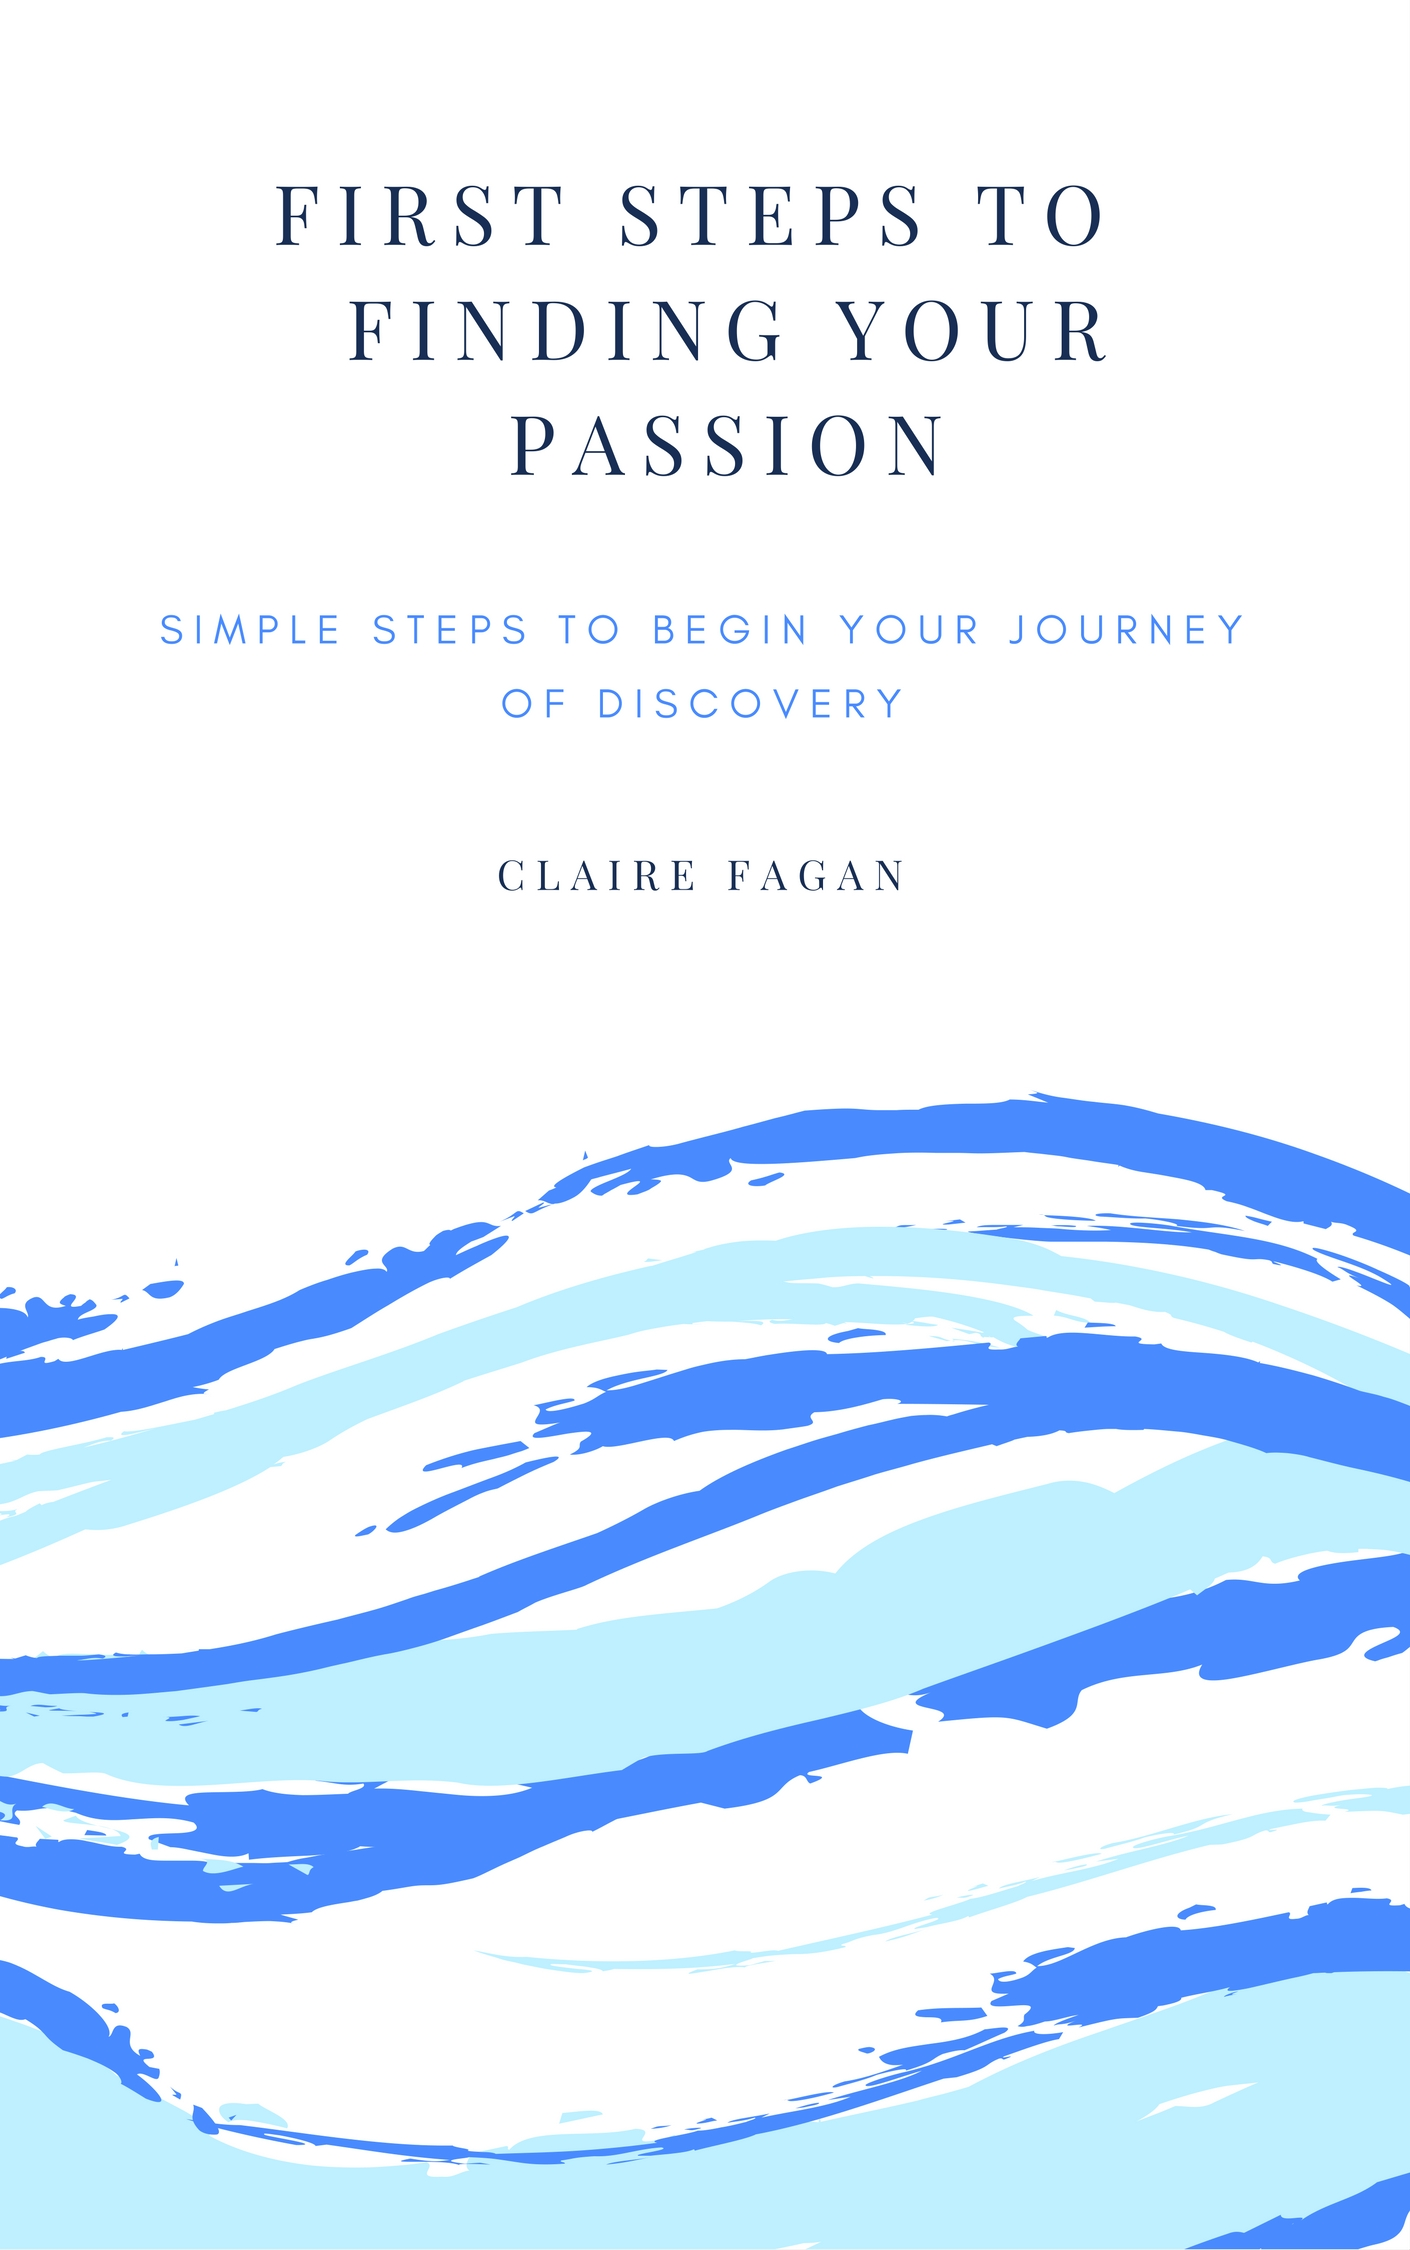 Simple steps to begin your Journey - Access to 'Finding your Passion'. If you're unsure where to start in discovering your passion, you will find this information a great way to begin. download the first steps to help you think in the right direction.